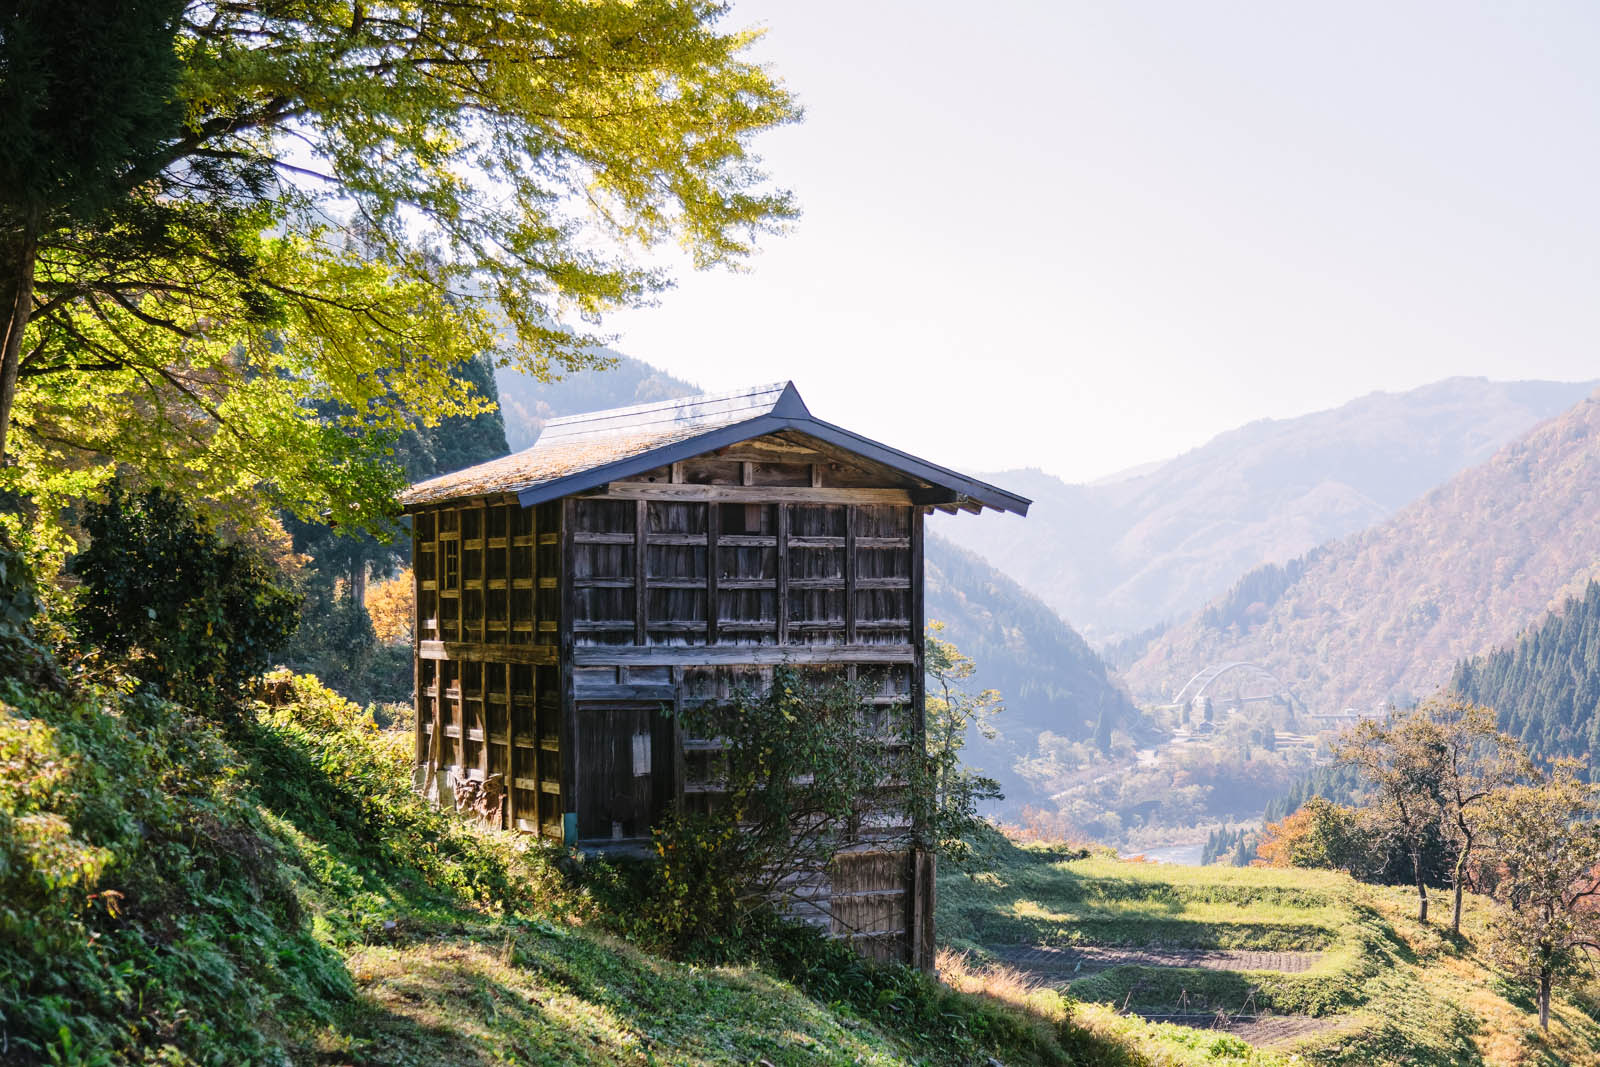 Architectural photography by Ben Tynegate of Gifu Prefecture - Japan